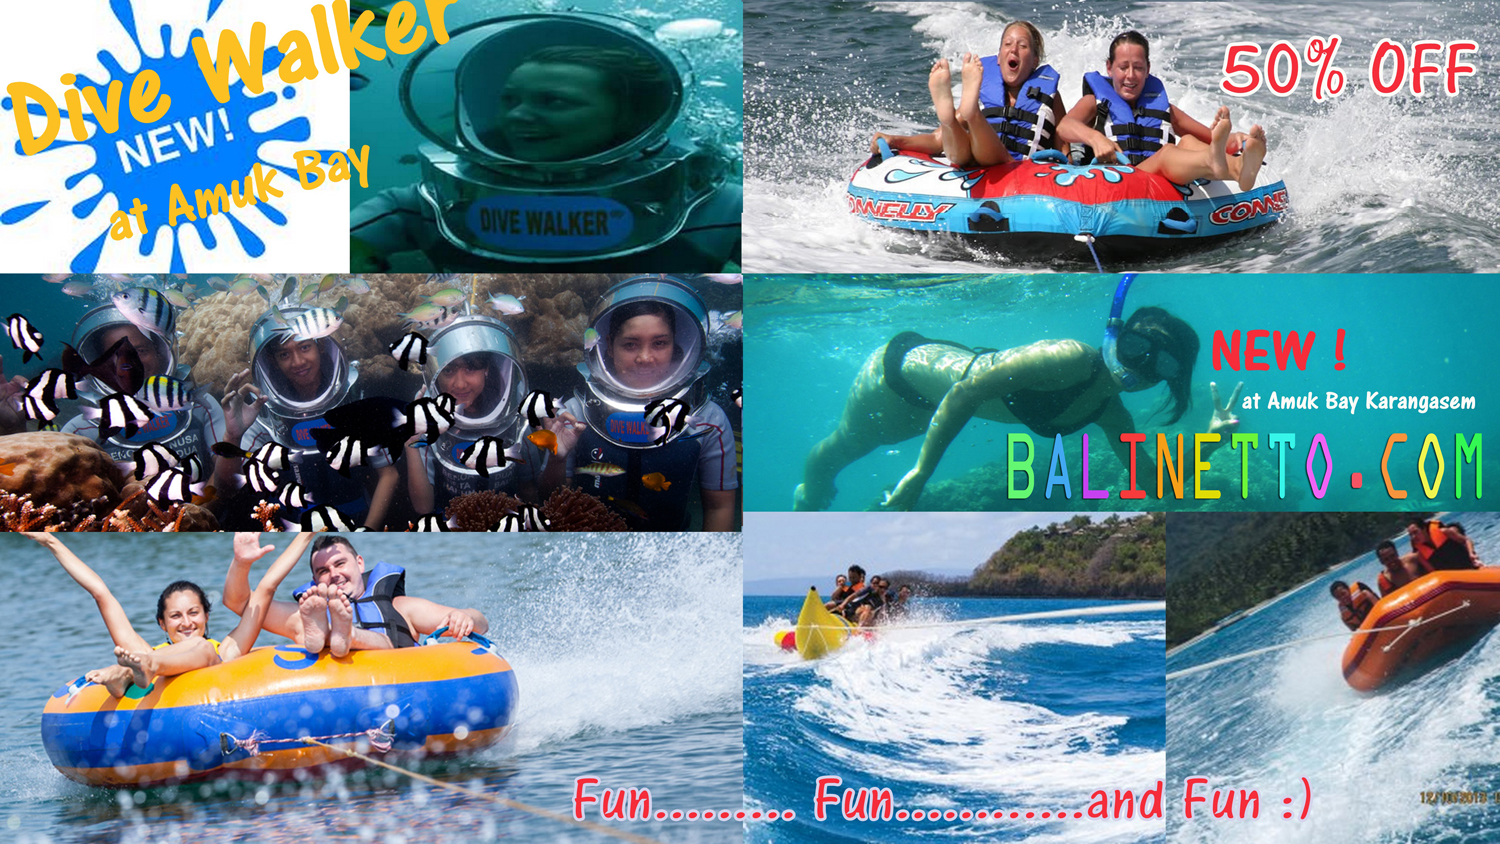 Balinetto Tiket Voucher Donat Boat Watersport Tanjung Benoa Bali New Promo Seawalker At Amuk Bay Karangasem Discount 50